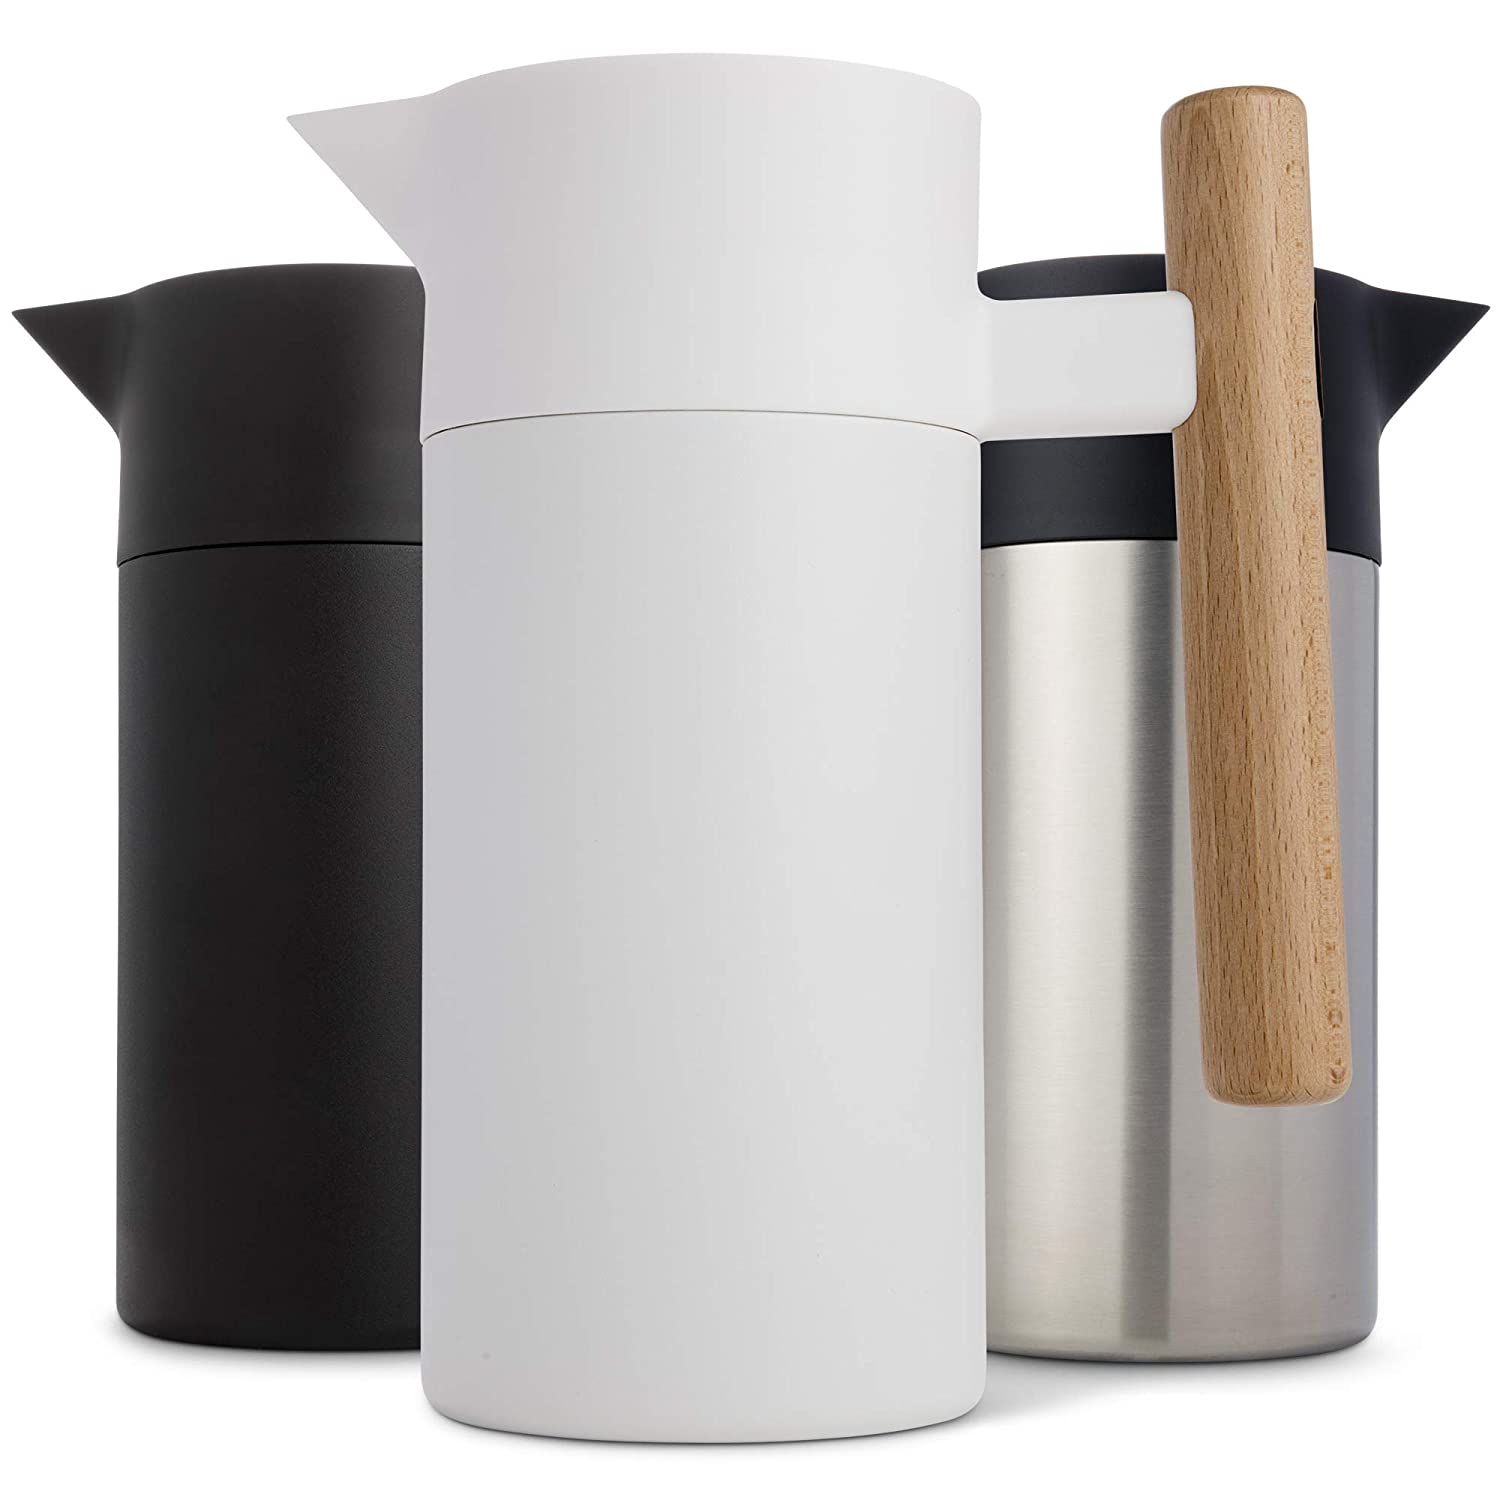 Stainless Steel Thermal Coffee Carafe​ - ​Double-Walled​ ​Vacuum Insulated​ ​Thermos and Beverage Pot ​- ​Compact, Travel-Size​ ​Strainer​ ​for​ Tea, ​Infused Drinks and Water ​- 40 Fl oz, White